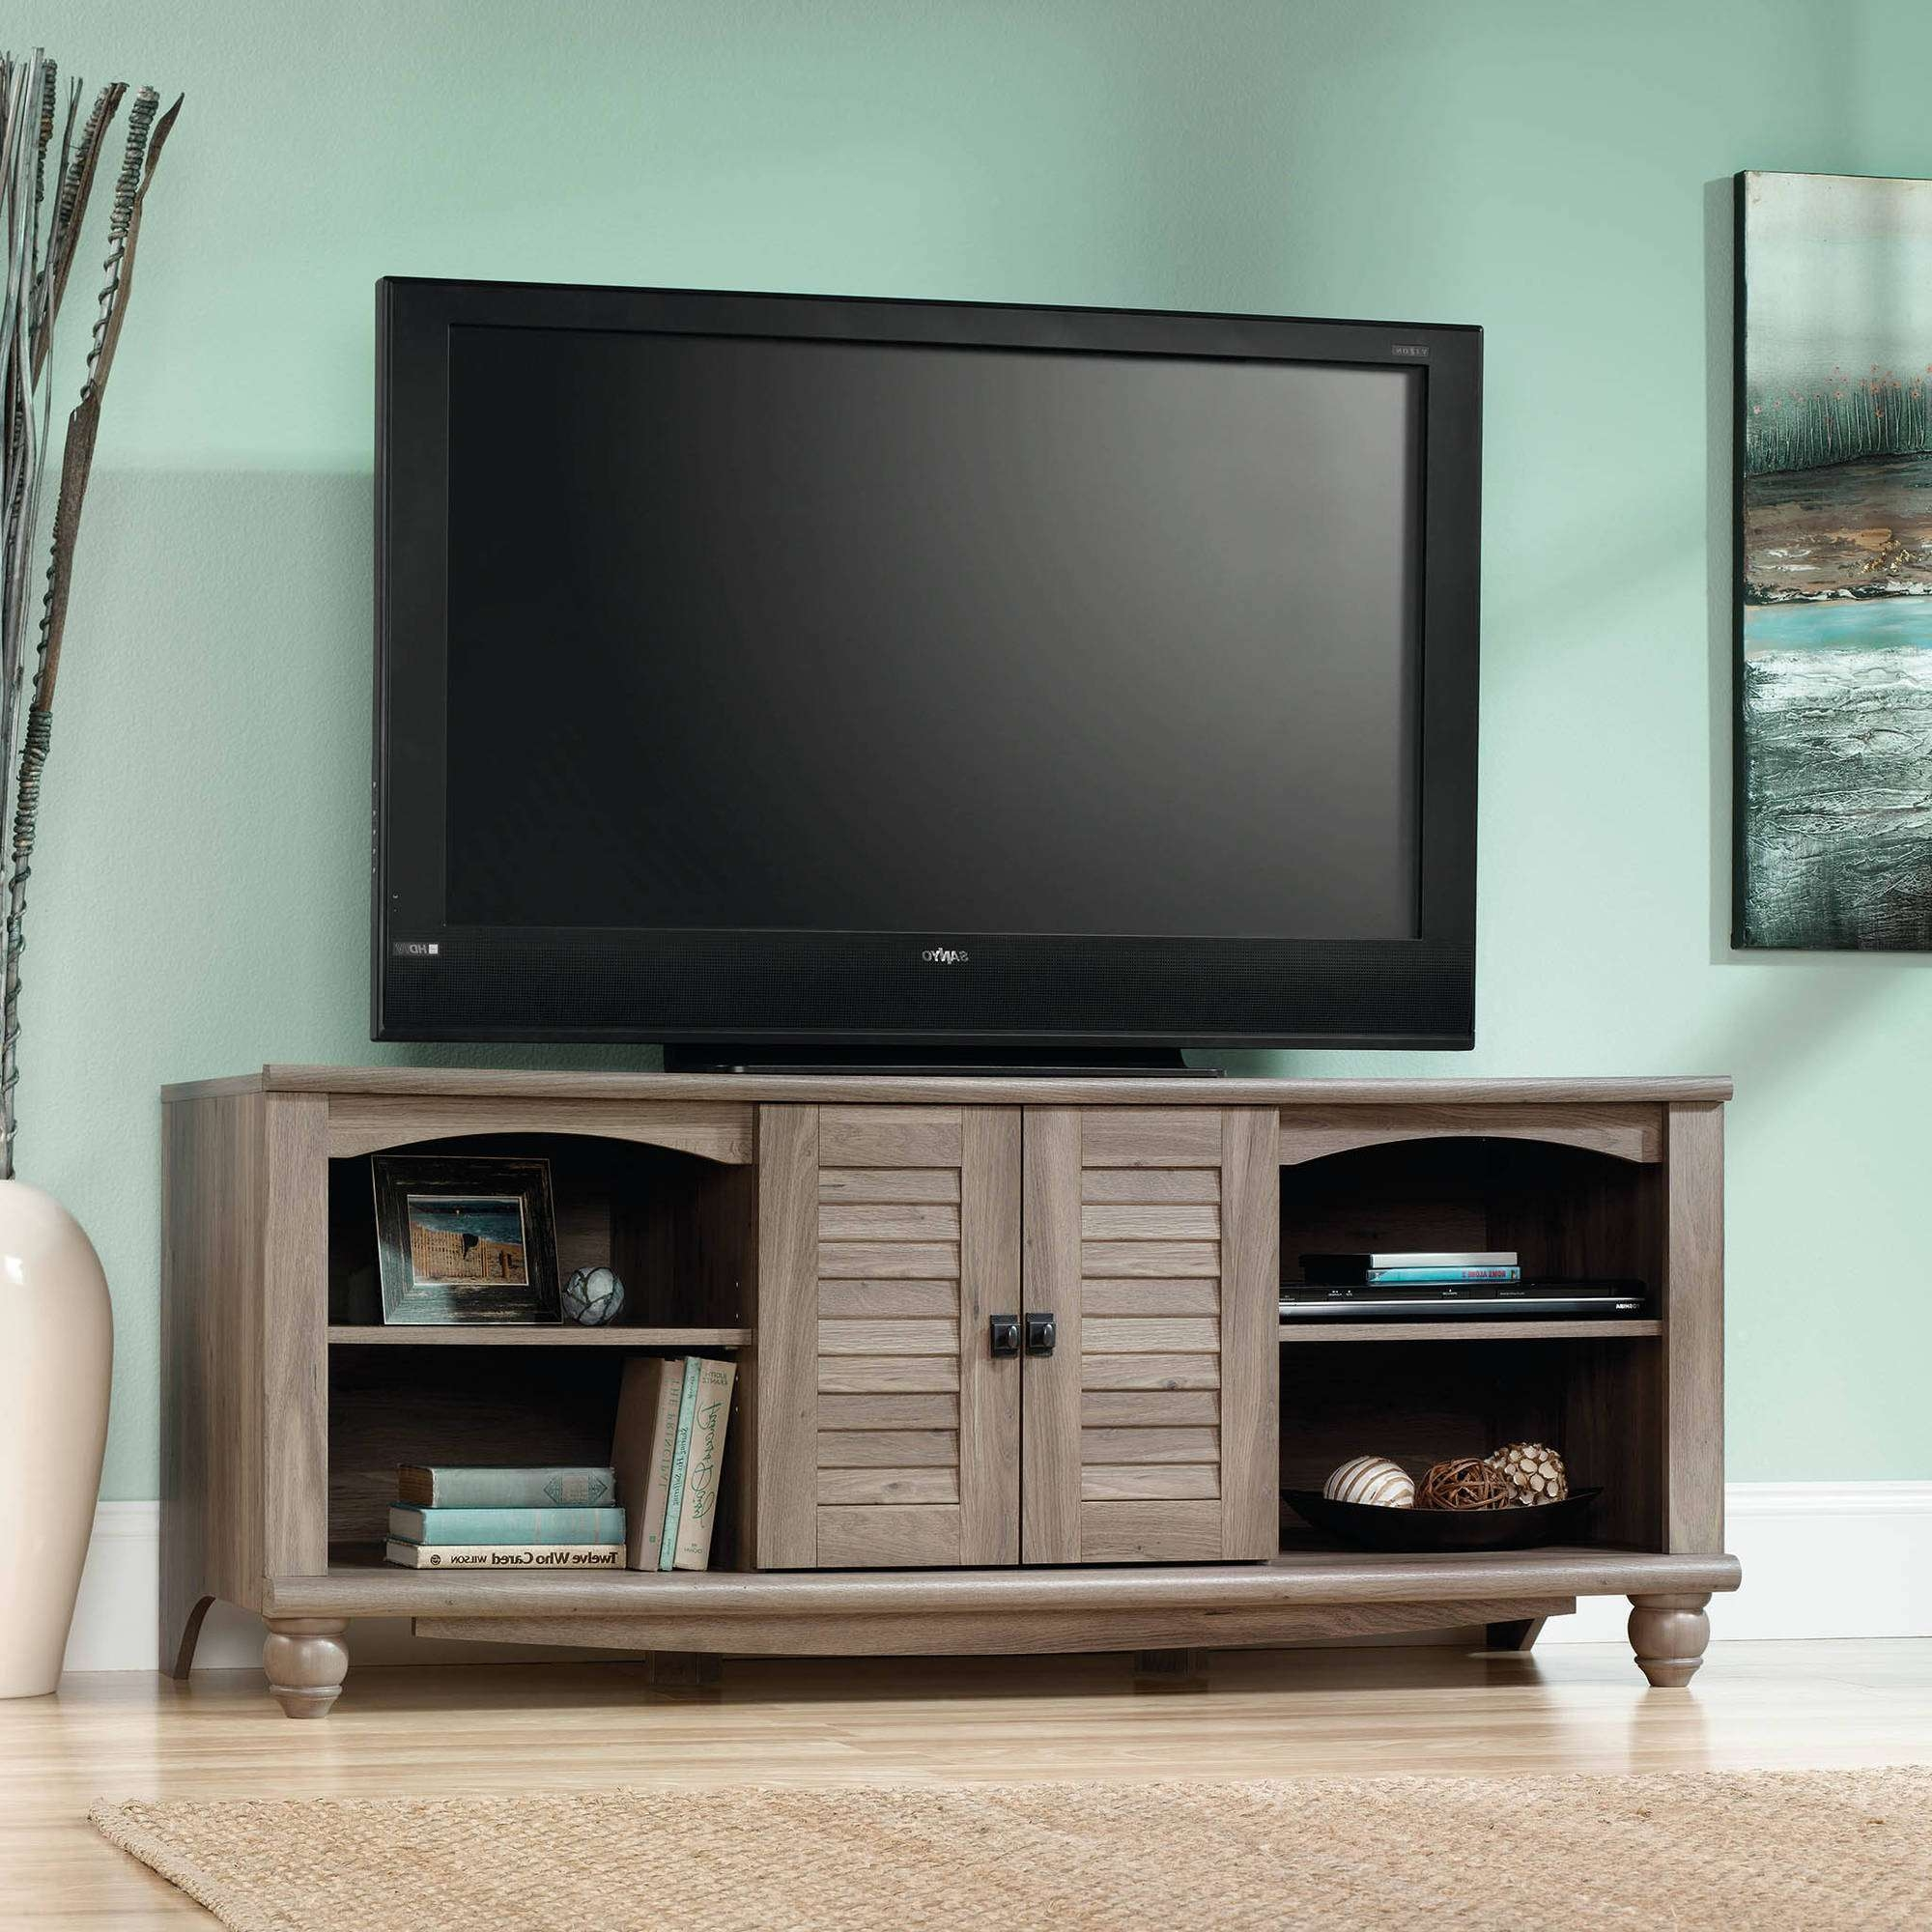 Tv Stands & Entertainment Centers – Walmart With Tv Stands With Baskets (View 13 of 15)